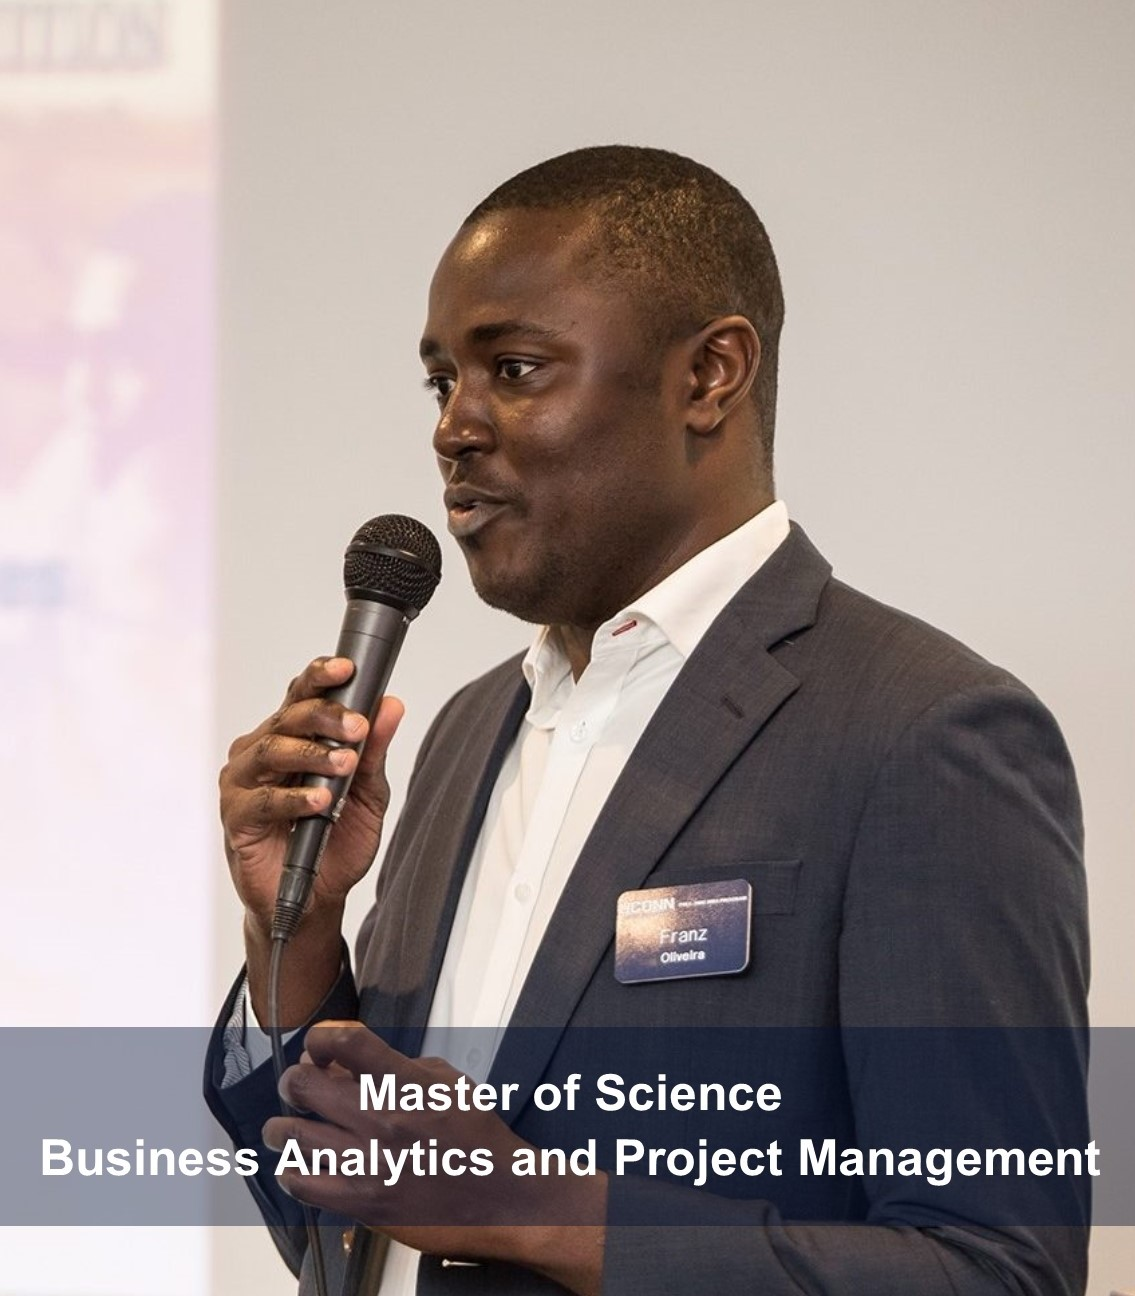 Master of Science in Business Analytics and Project Management